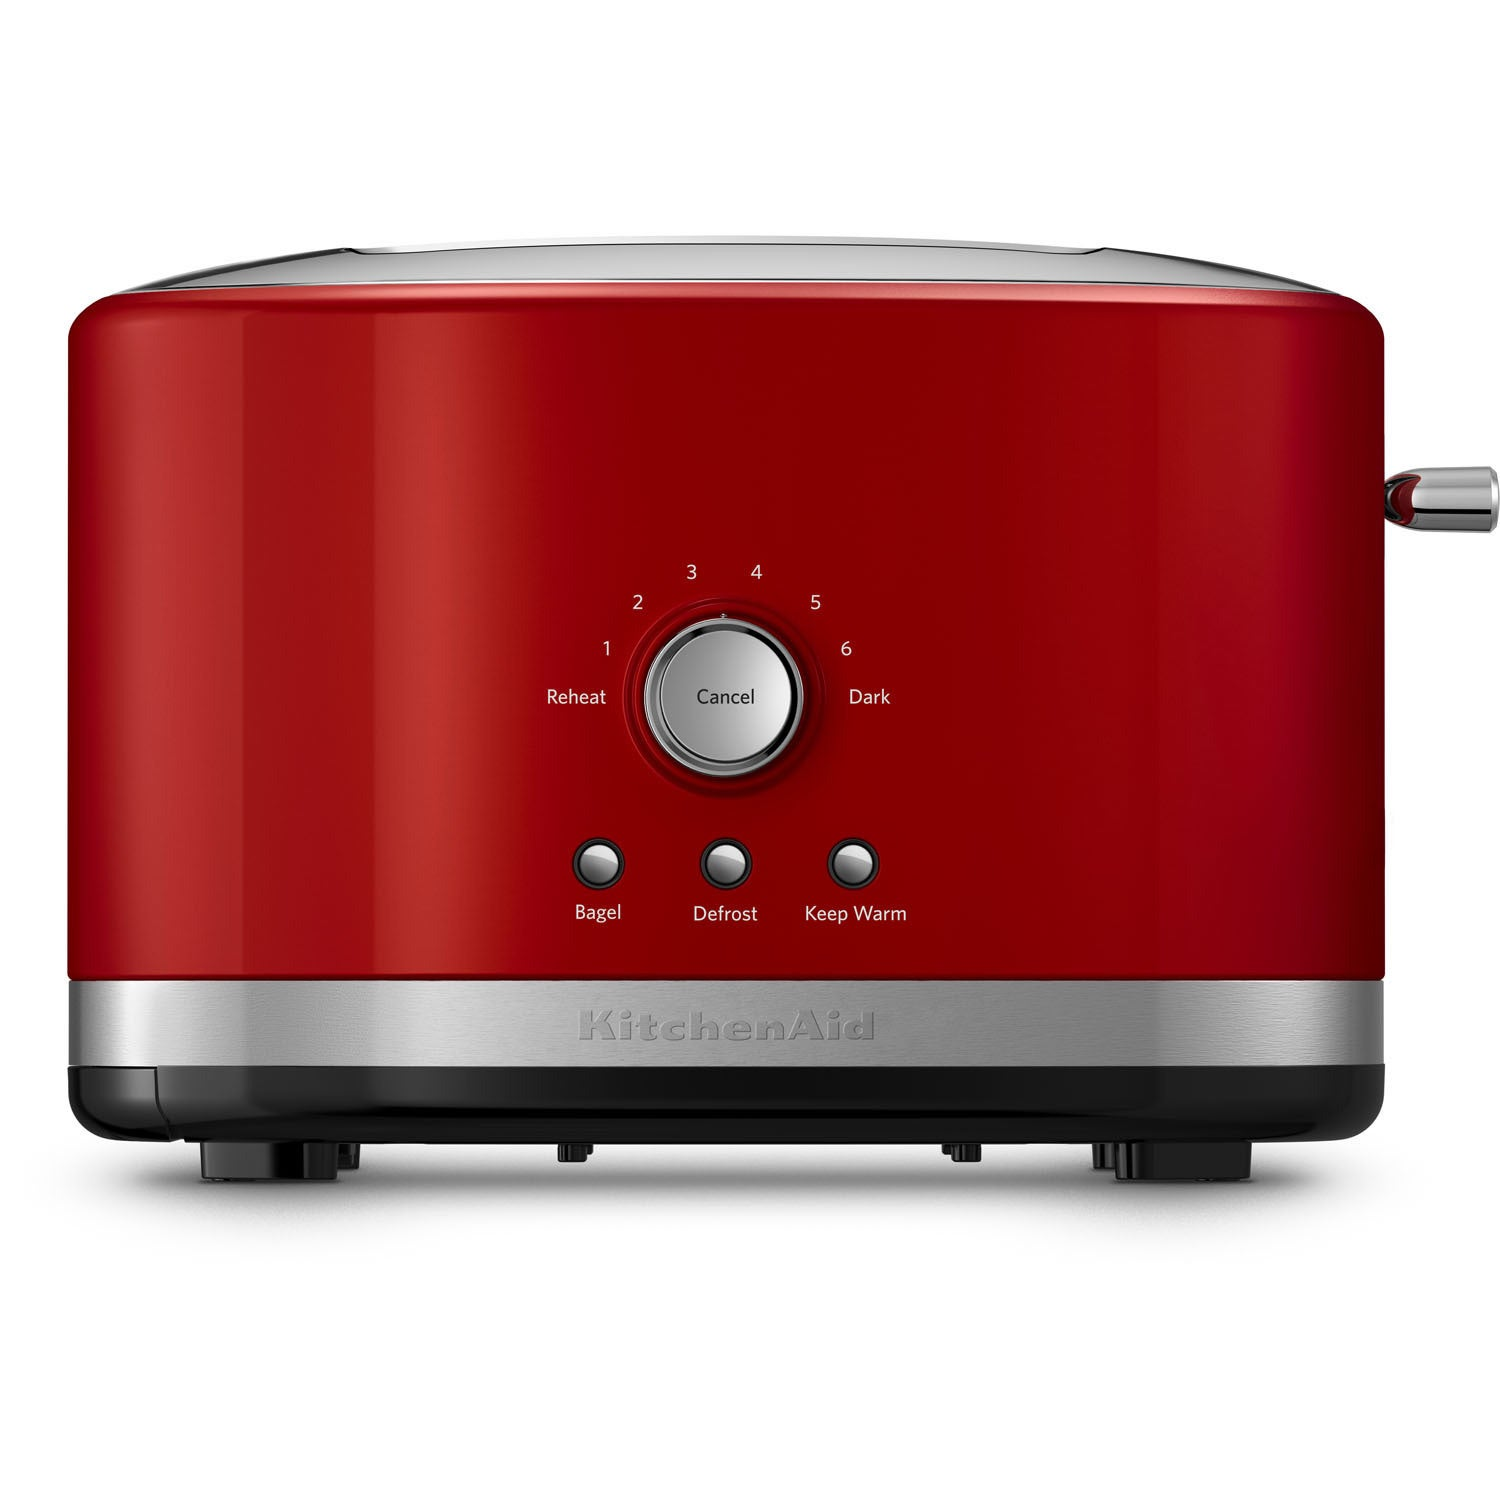 steel com dining oster compact red stainless toaster two kitchen best slice rated amazon digital proctor bread dp bagel cuisinart toasters large silex